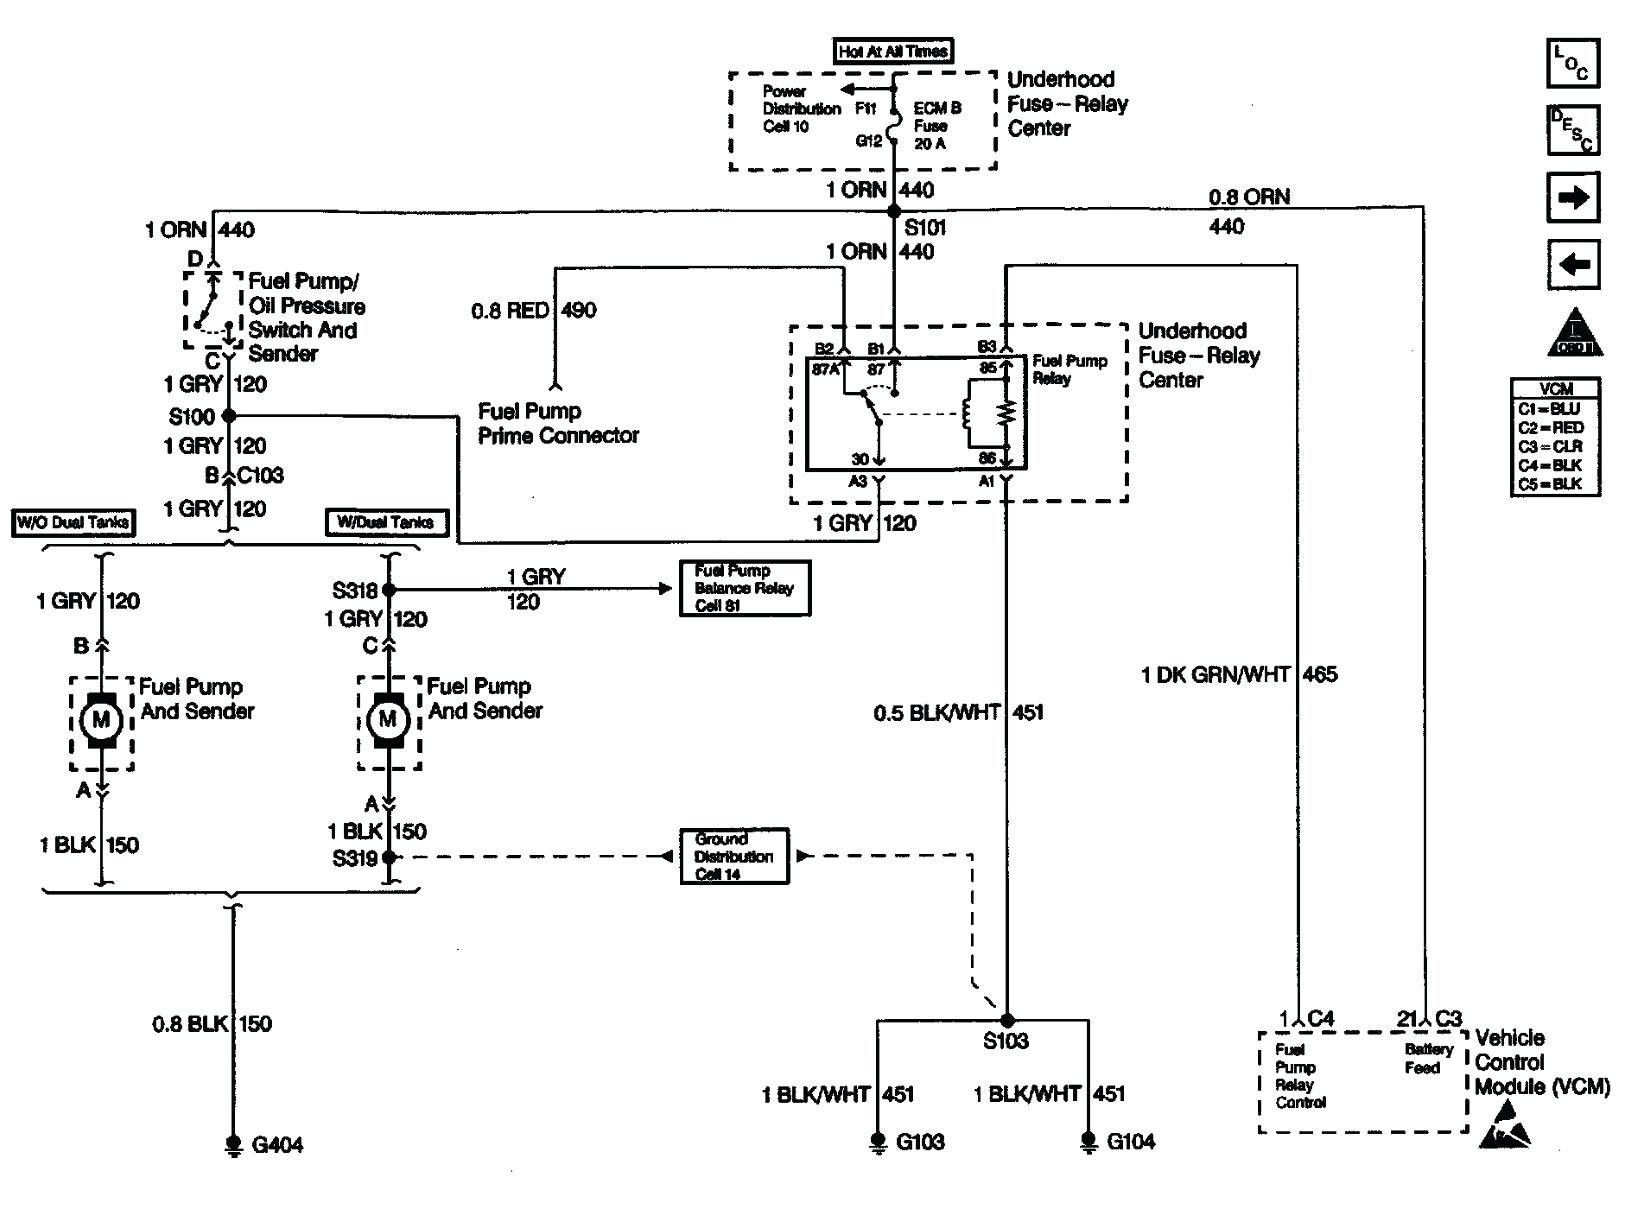 40 Chevrolet S10 Wiring Diagram New Jersey In 2021 Chevy Trucks Electrical Wiring Diagram Chevrolet S 10